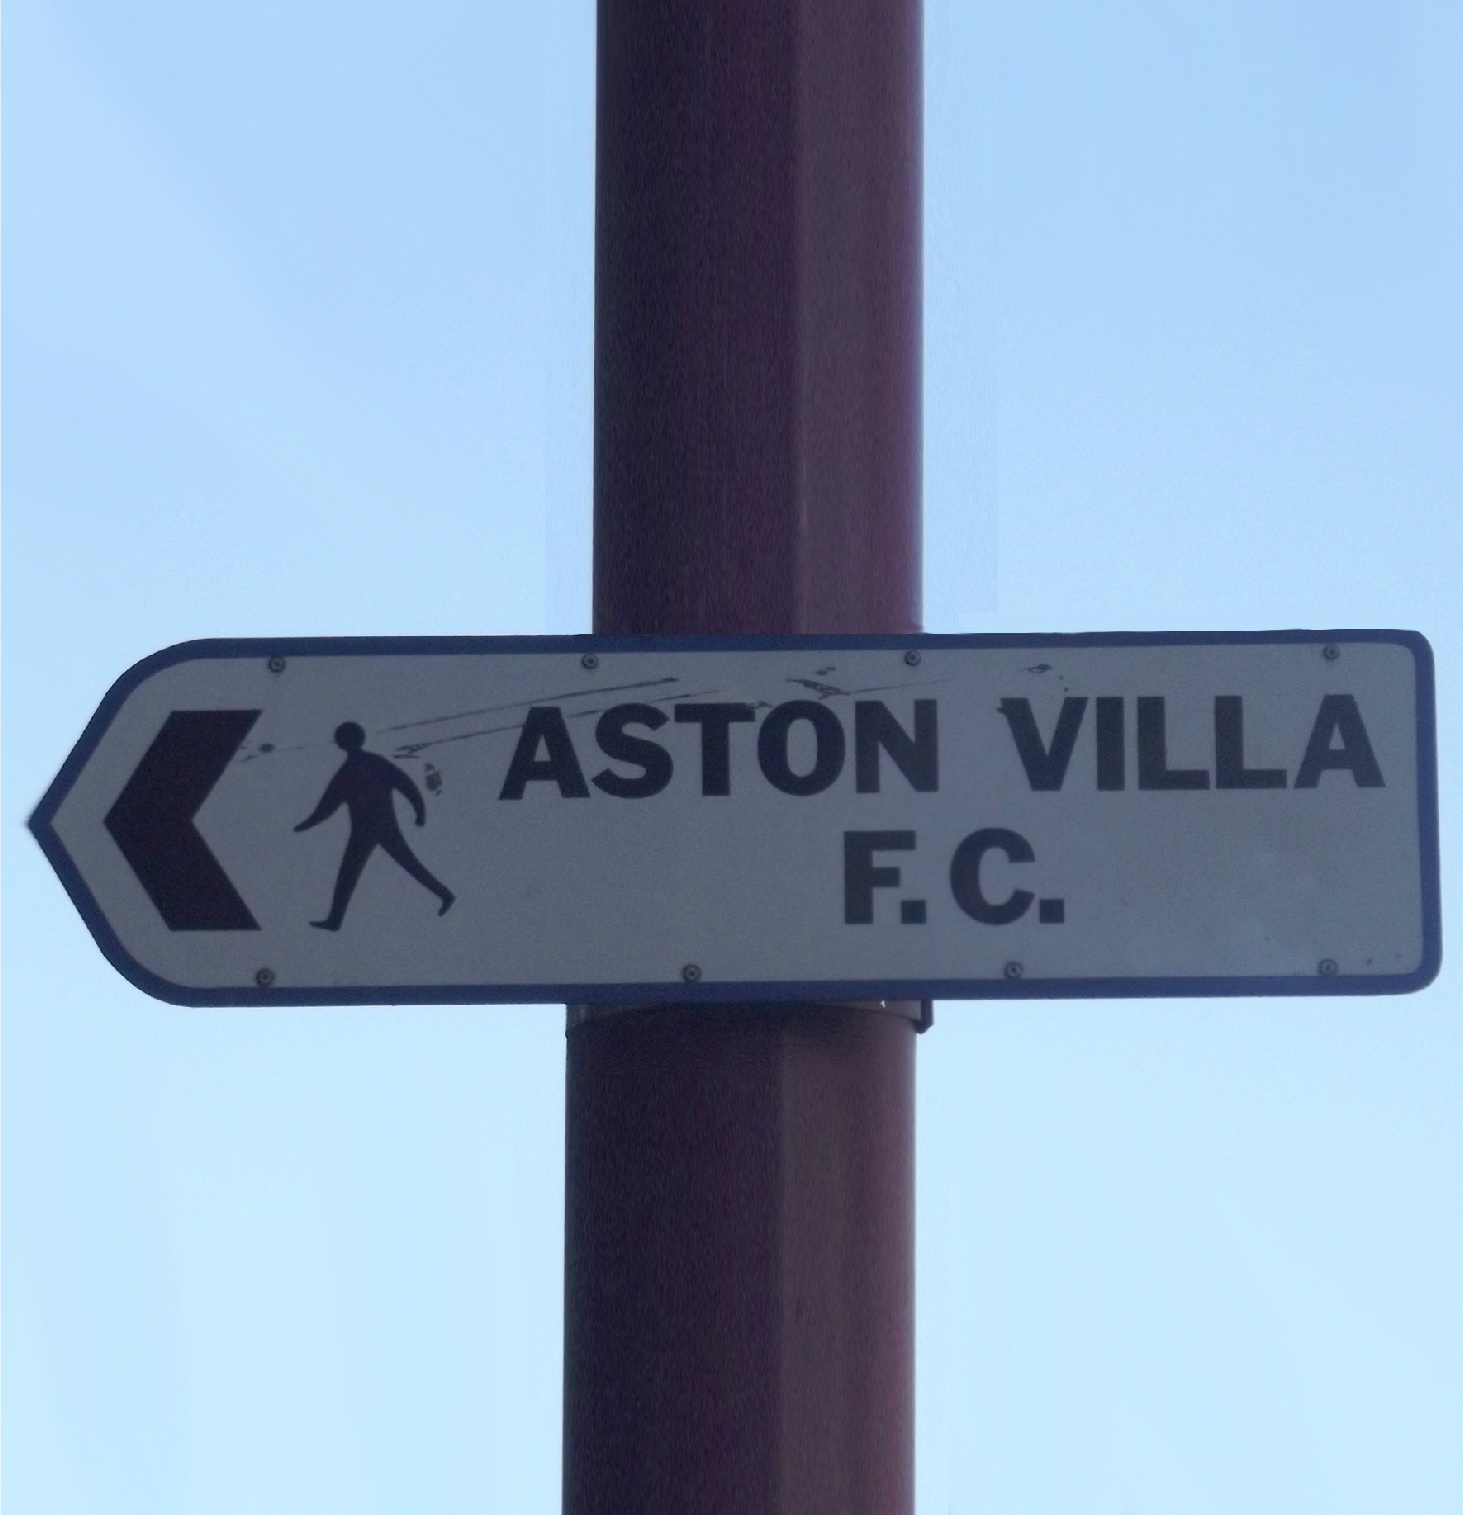 https://tccars.co.uk/wp-content/uploads/2016/08/Villa-Park-Side-Image-Risized.jpg